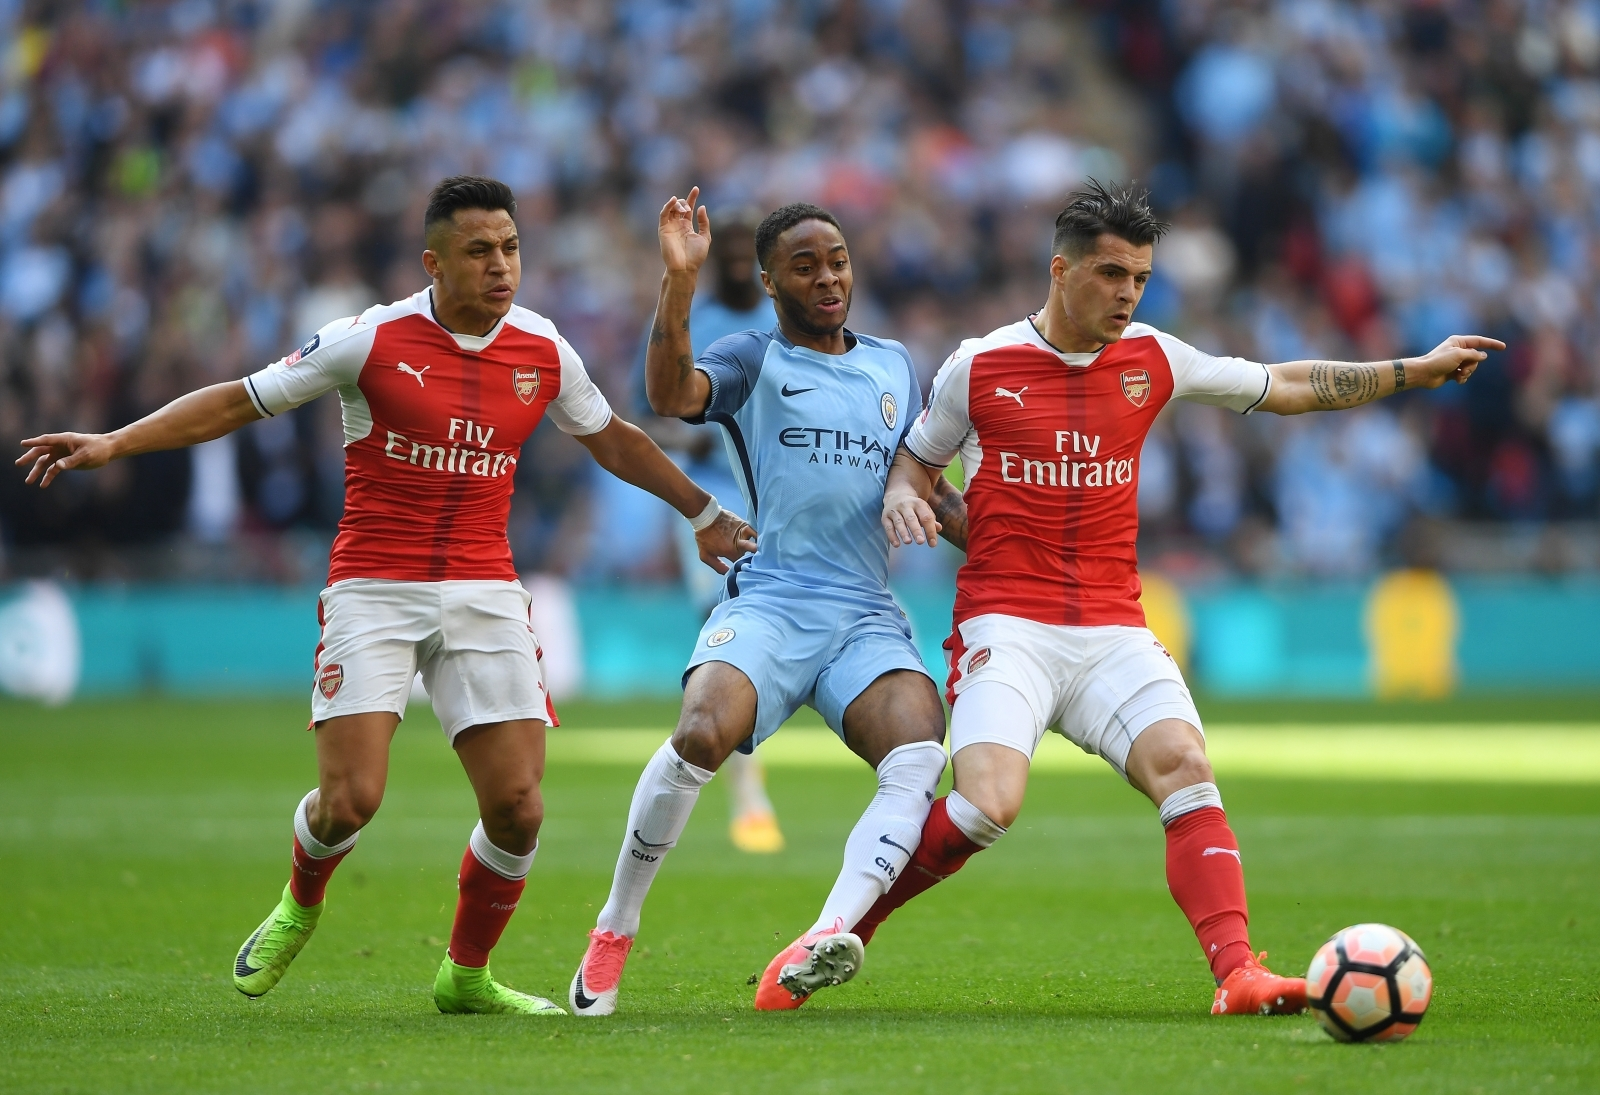 Xhaka Claims Arsenal Can Catch Man City In Premier League Title Race